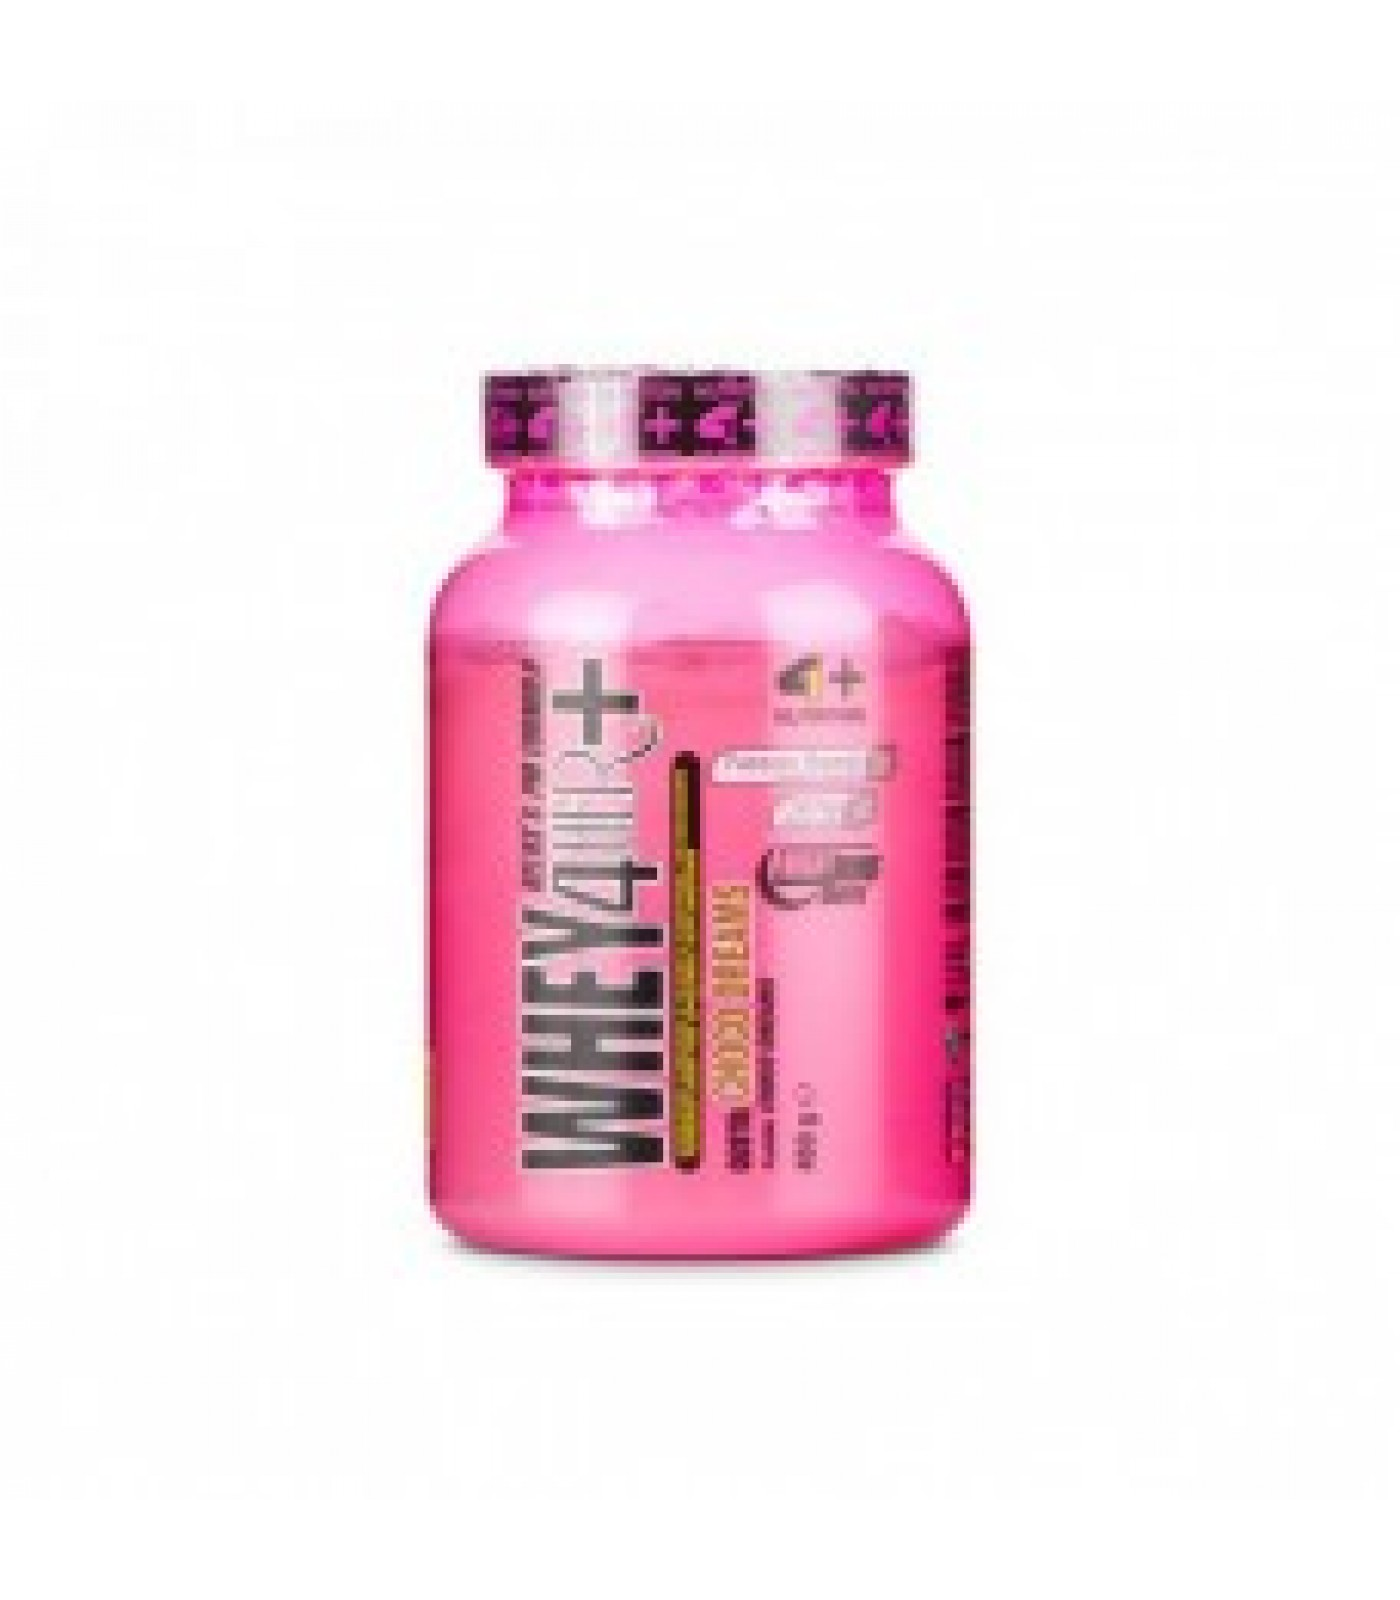 4+ Nutrition WHEY 4 HER+ RELAX&PM FORMULA​ 450 гр.